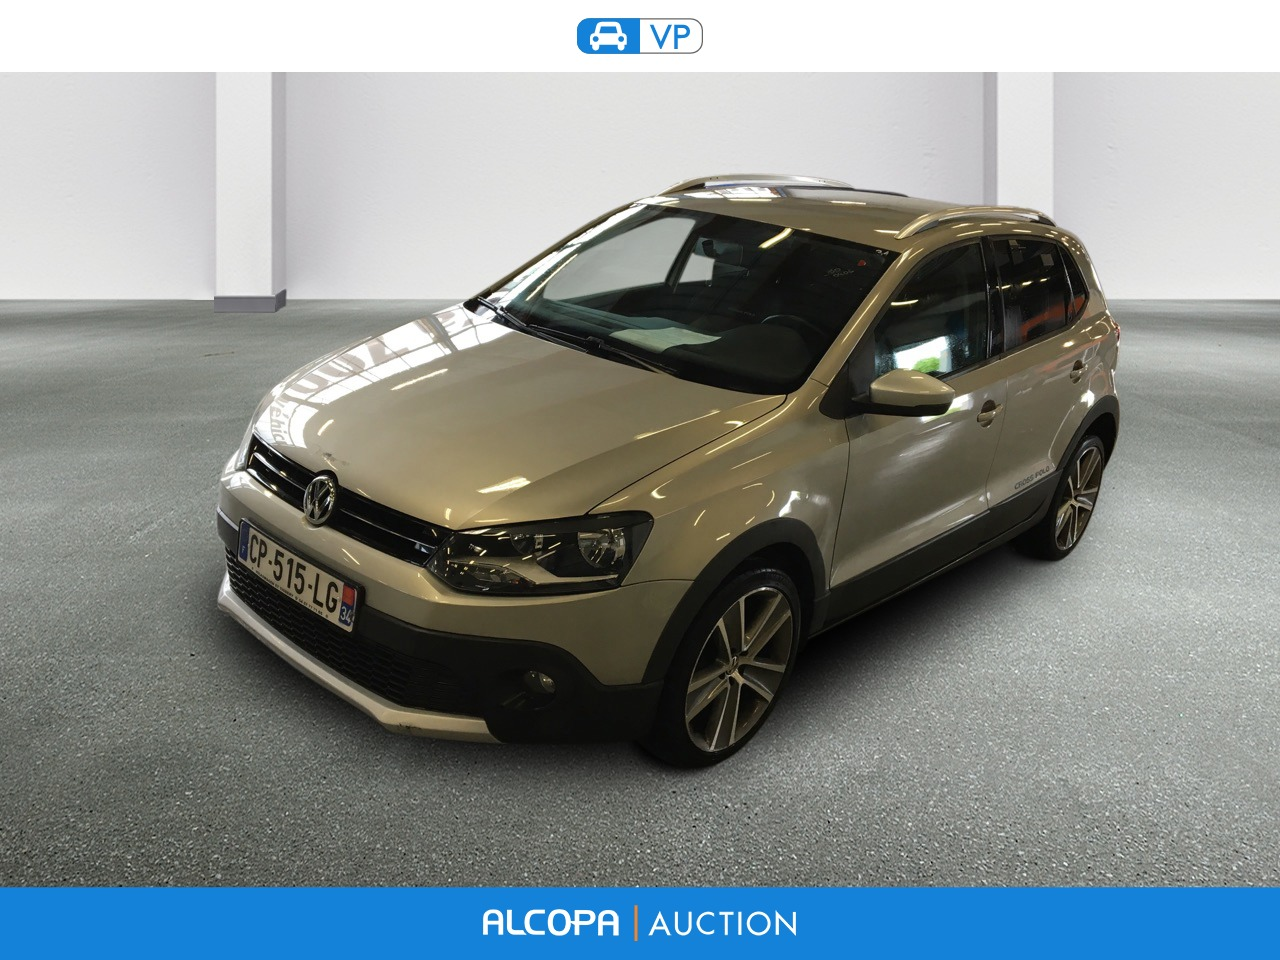 volkswagen polo polo 1 6 tdi 90 cr fap cross polo alcopa auction. Black Bedroom Furniture Sets. Home Design Ideas